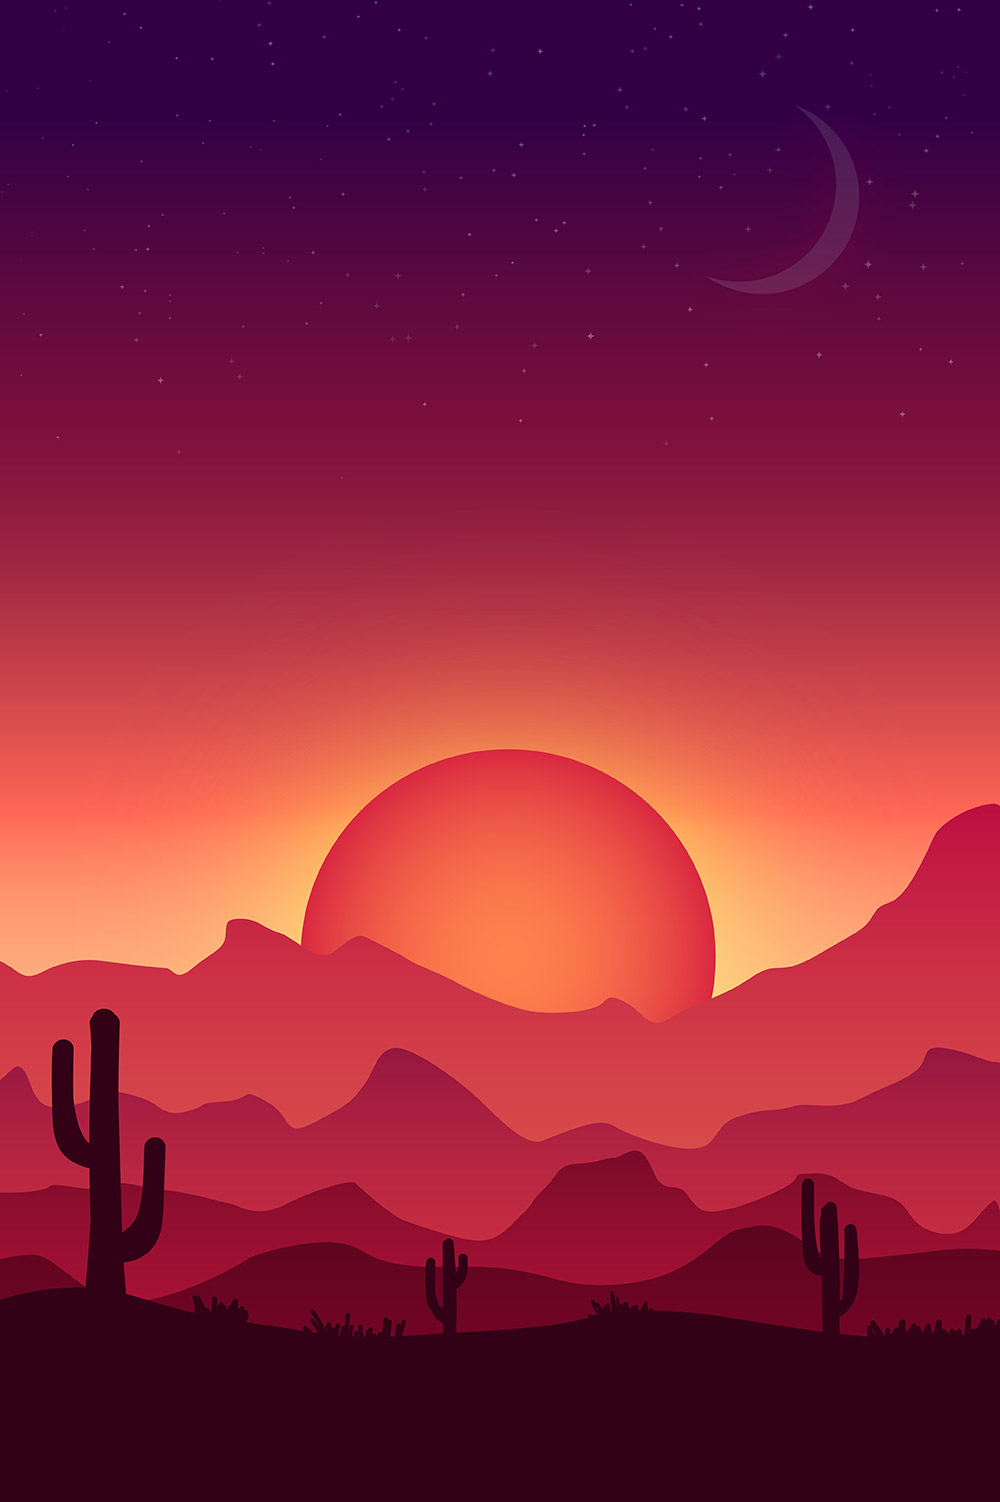 How To Create A Colorful Vector Landscape Illustration In Today's Adobe  Illustrator